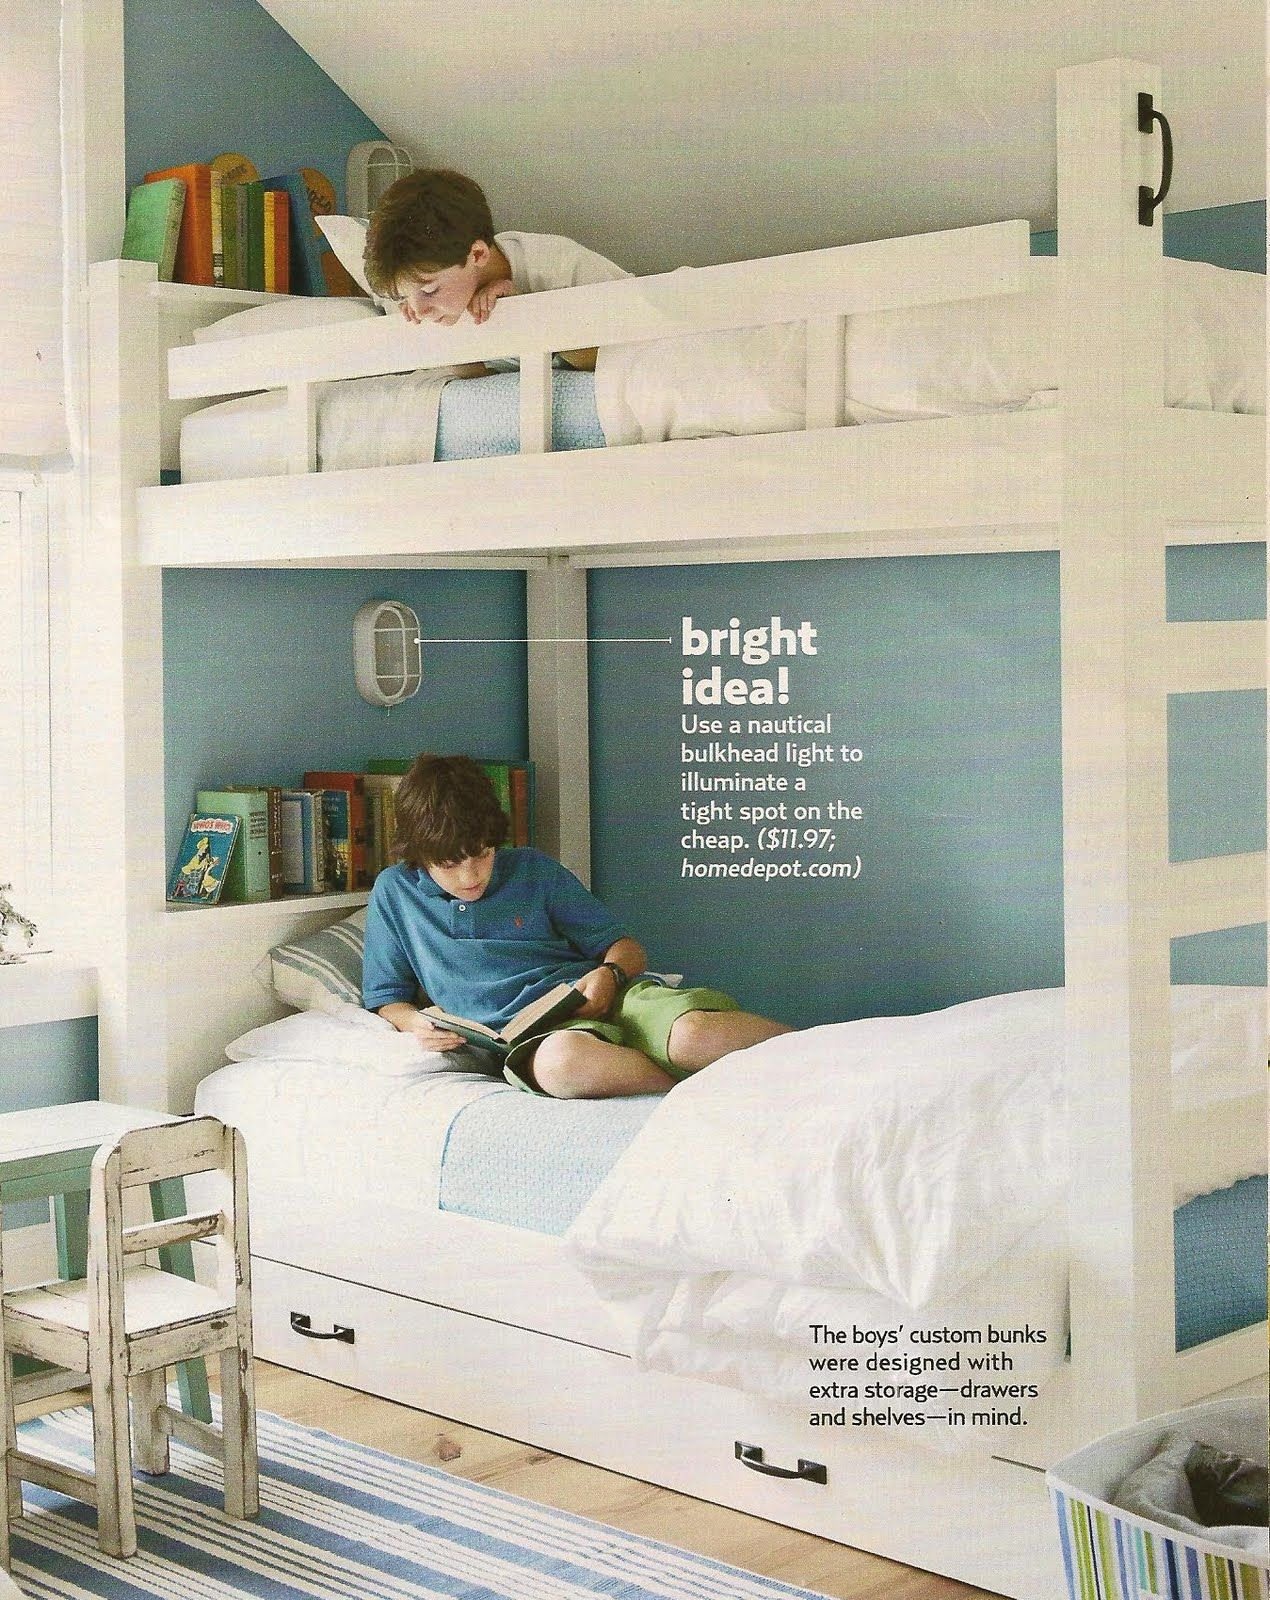 Bunk Beds Good Idea For Individual Lighting Shelf For Books